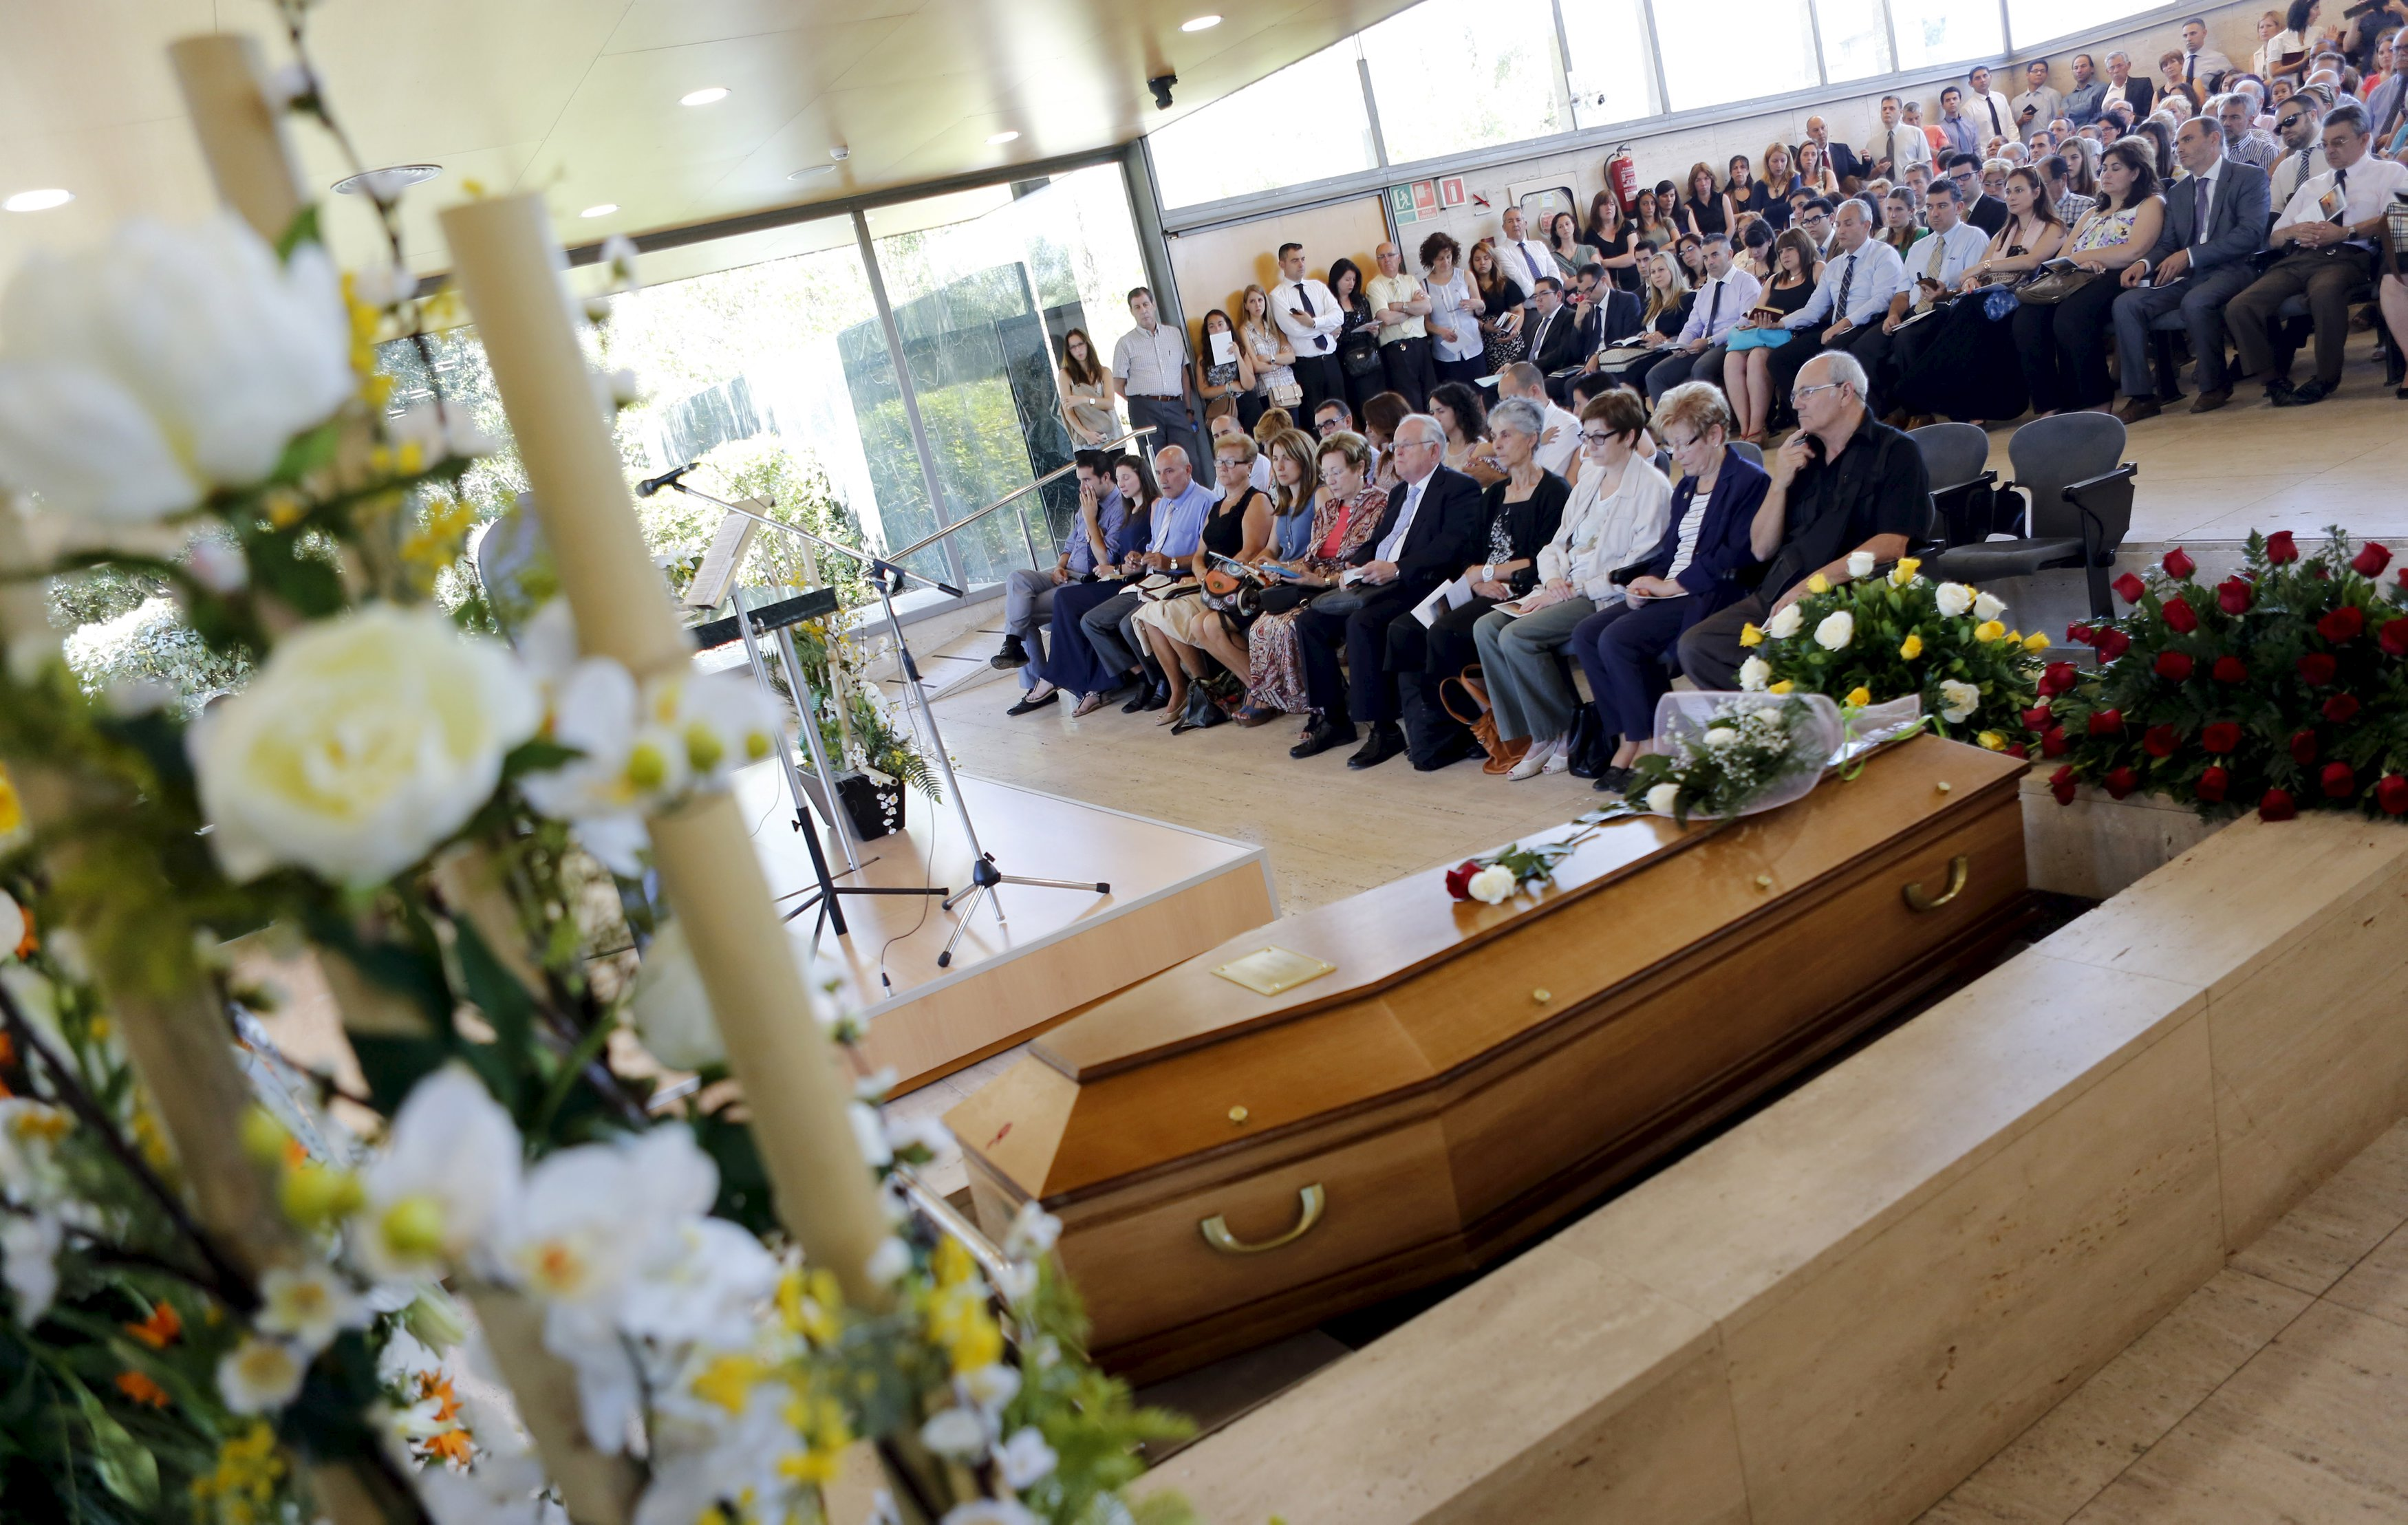 Relatives and family of Robert Oliver of U.S., a victim of the Germanwings flight 4U 9525 plane disaster, take part in a memorial service in Montcada i Reixac, near Barcelona, Spain June 20, 2015. Photo: Reuters